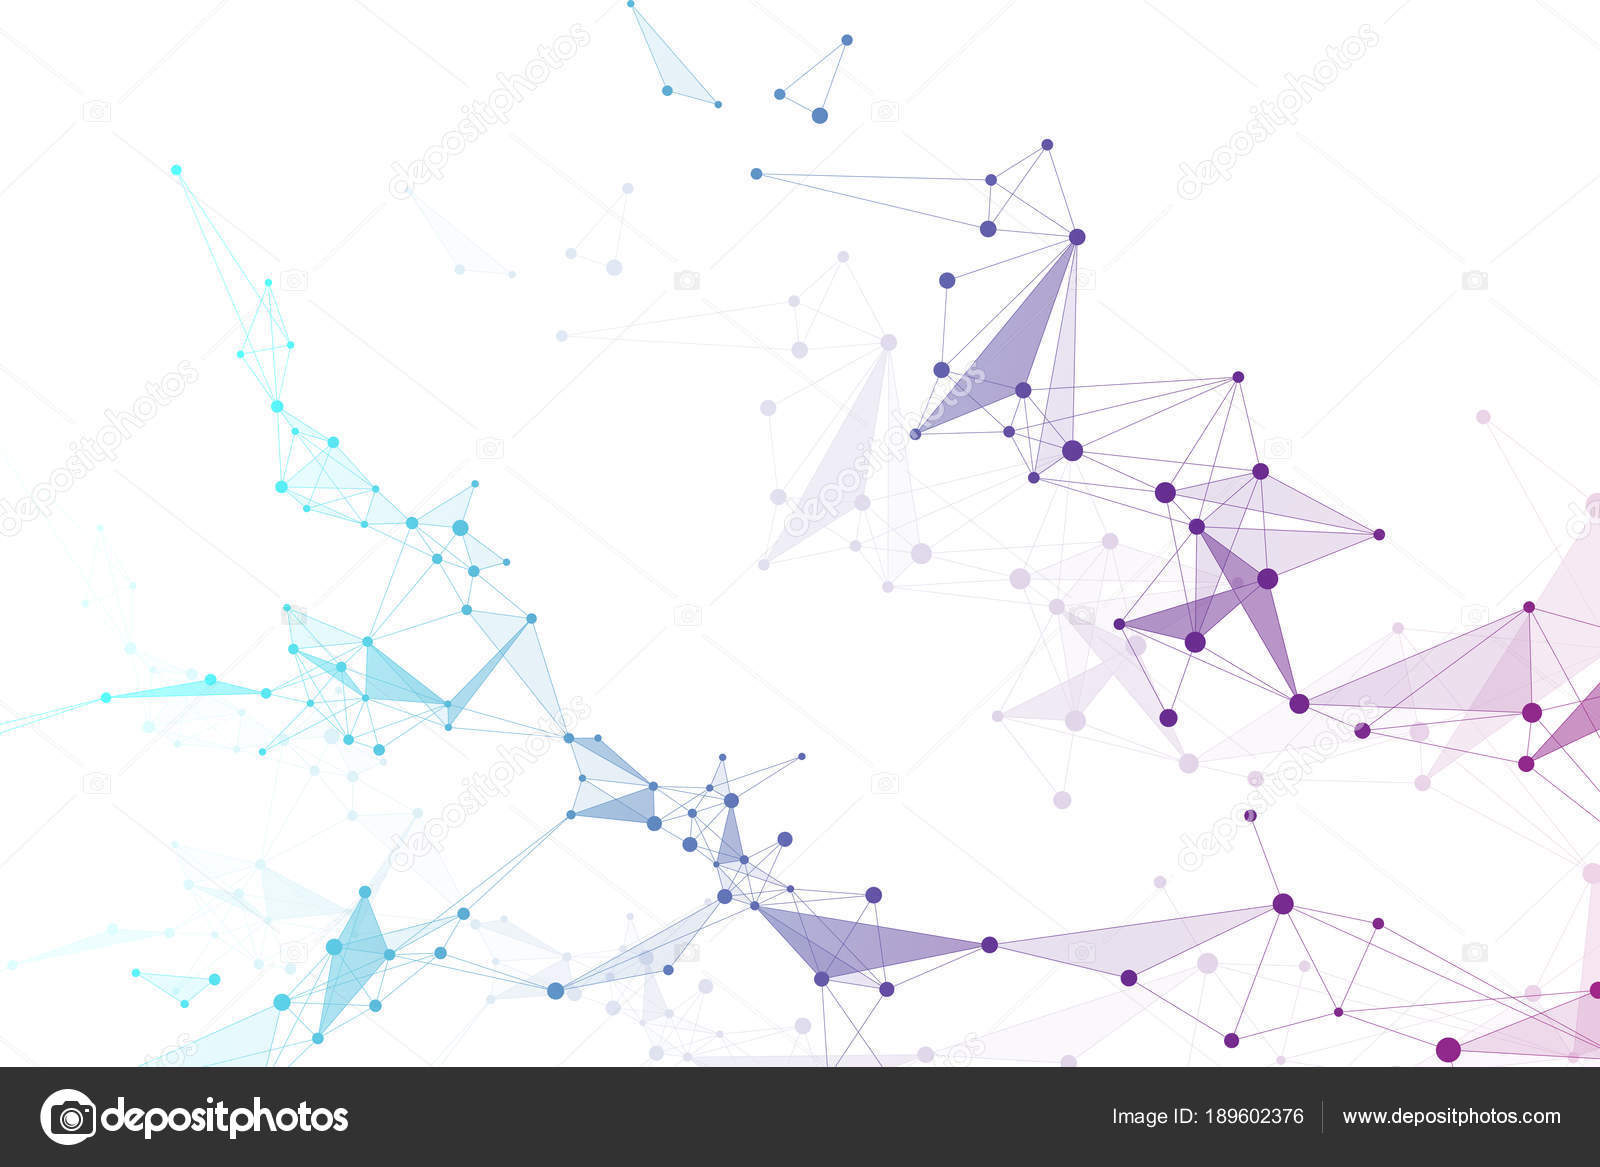 Big data visualization  Graphic abstract background